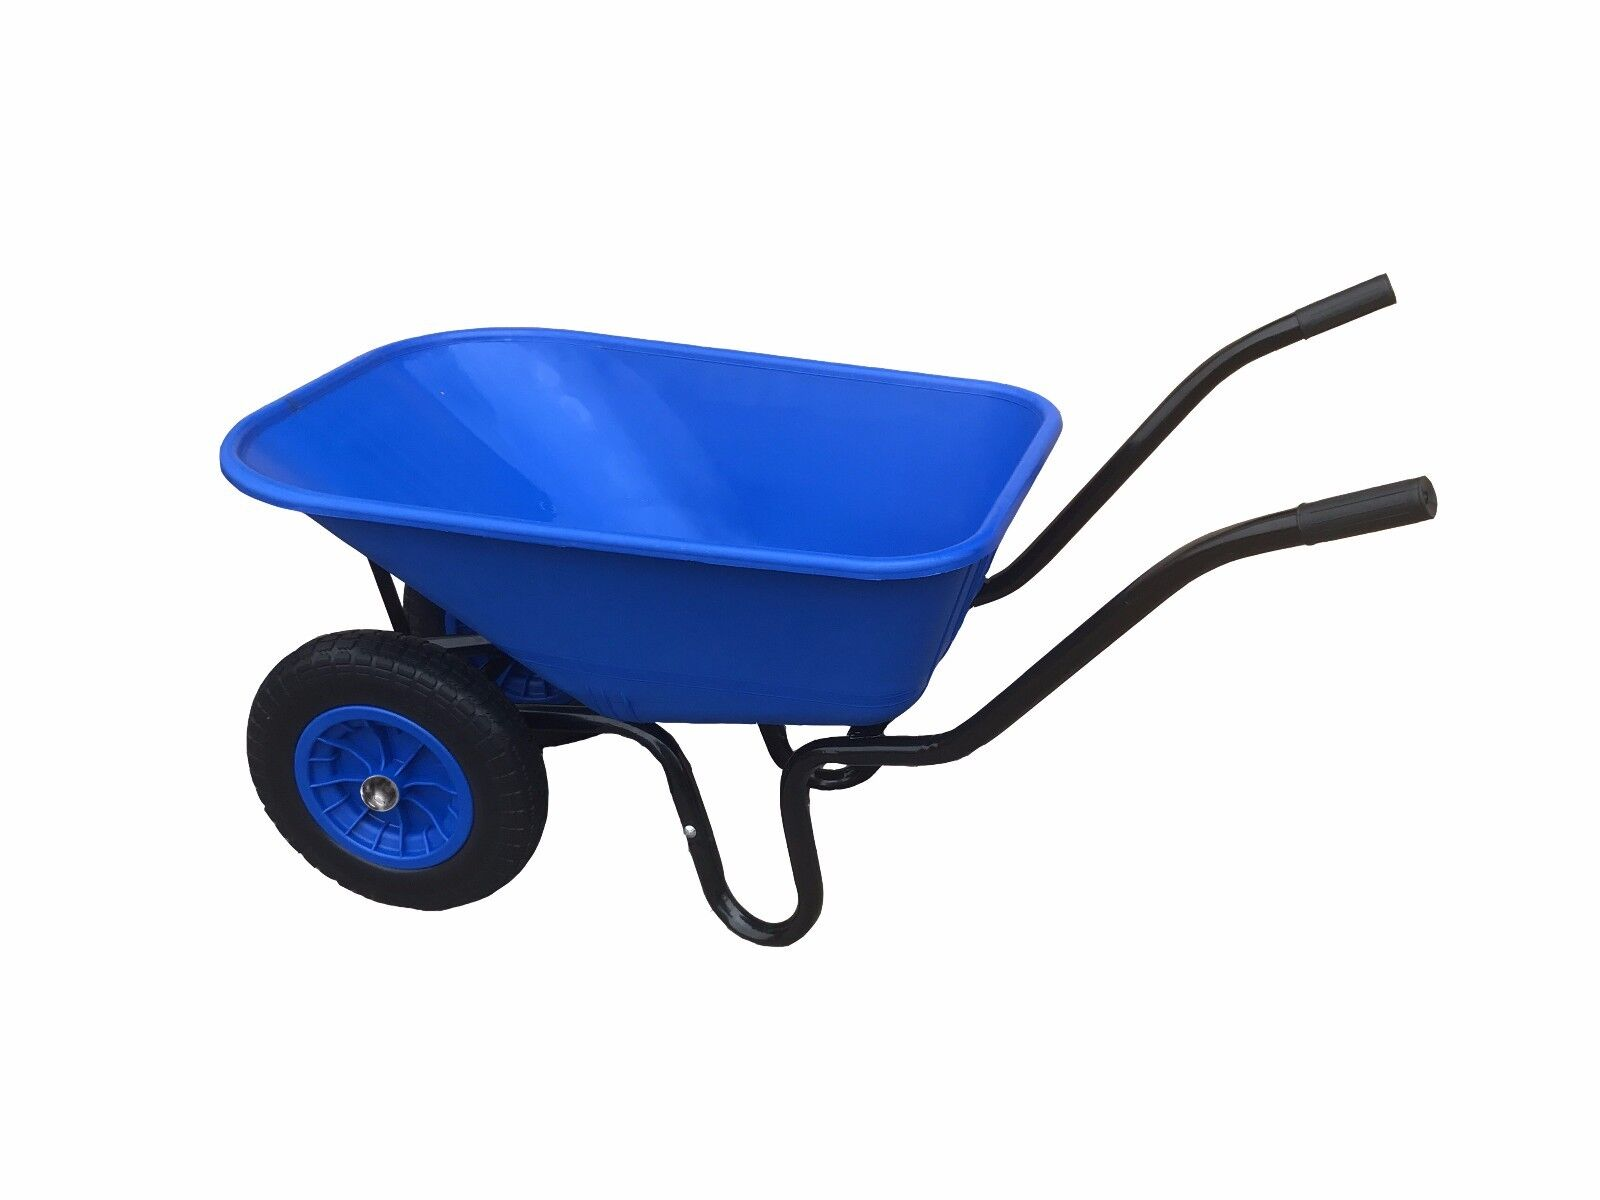 110L TWIN WHEELBARROW WITH PNEUMATIC WHEEL & blueE PLASTIC BODY WHEEL BARROW